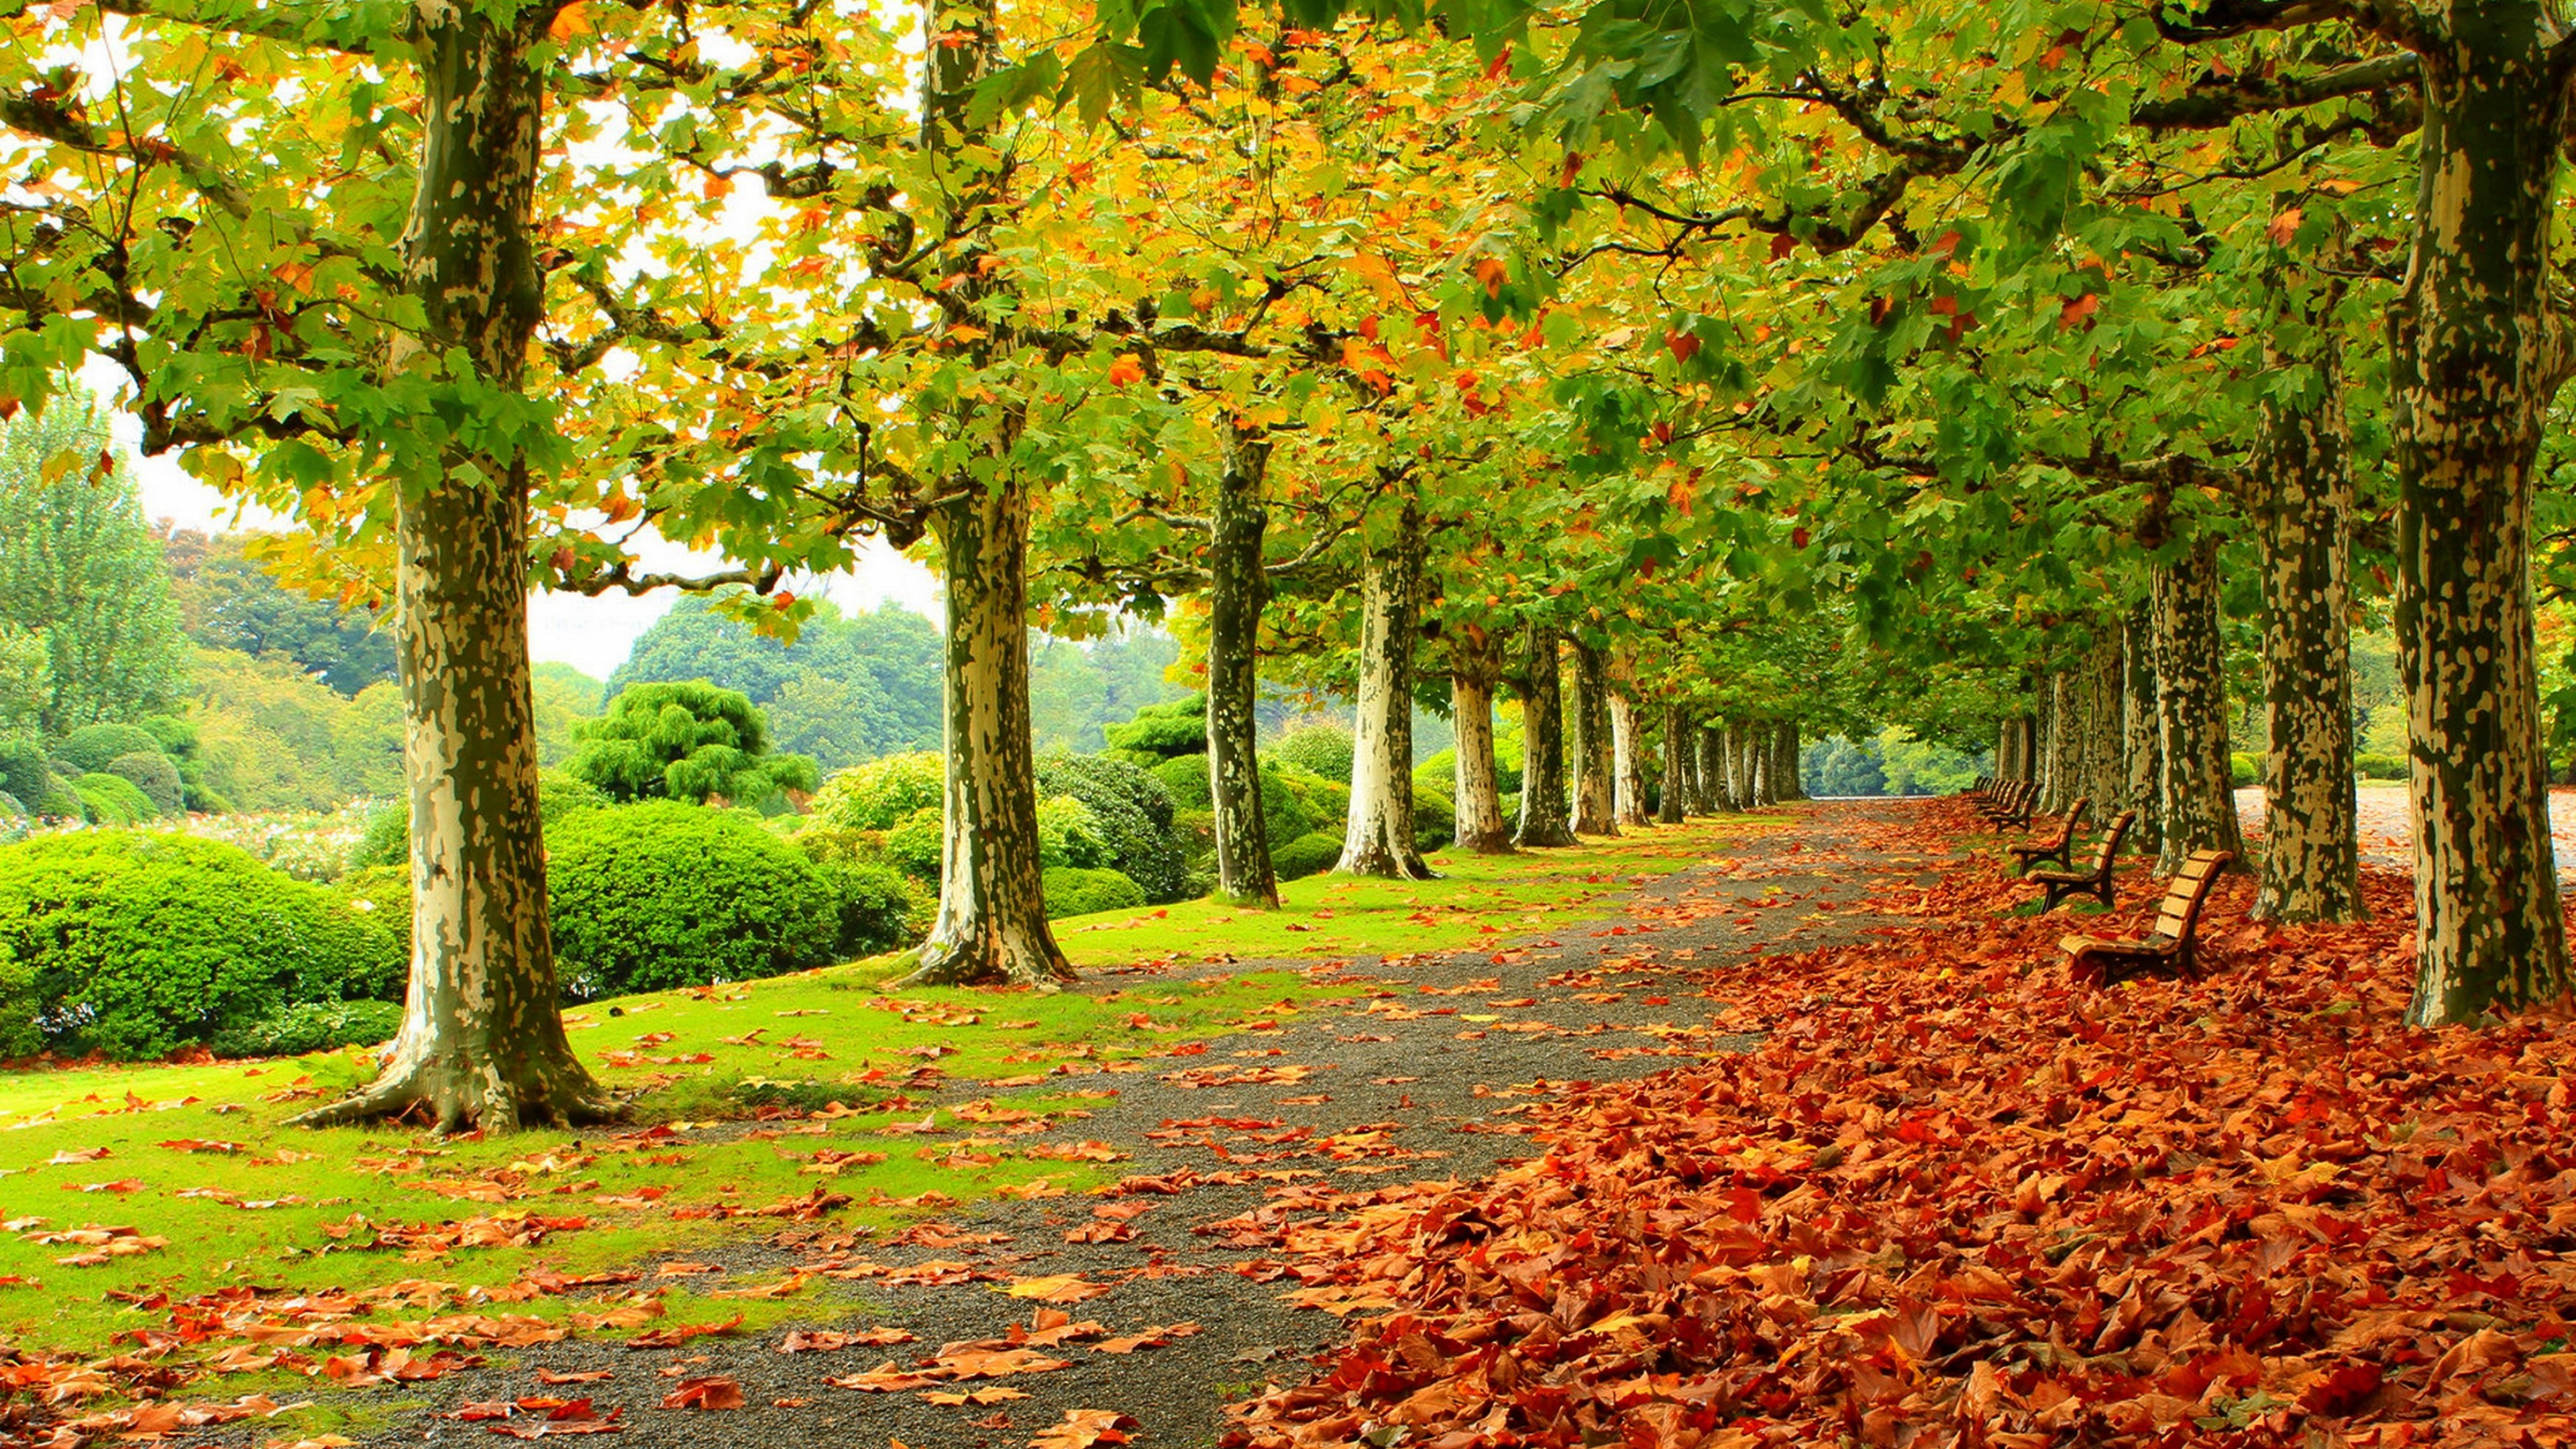 Autumn Scenery Wallpapers, Pictures, Images